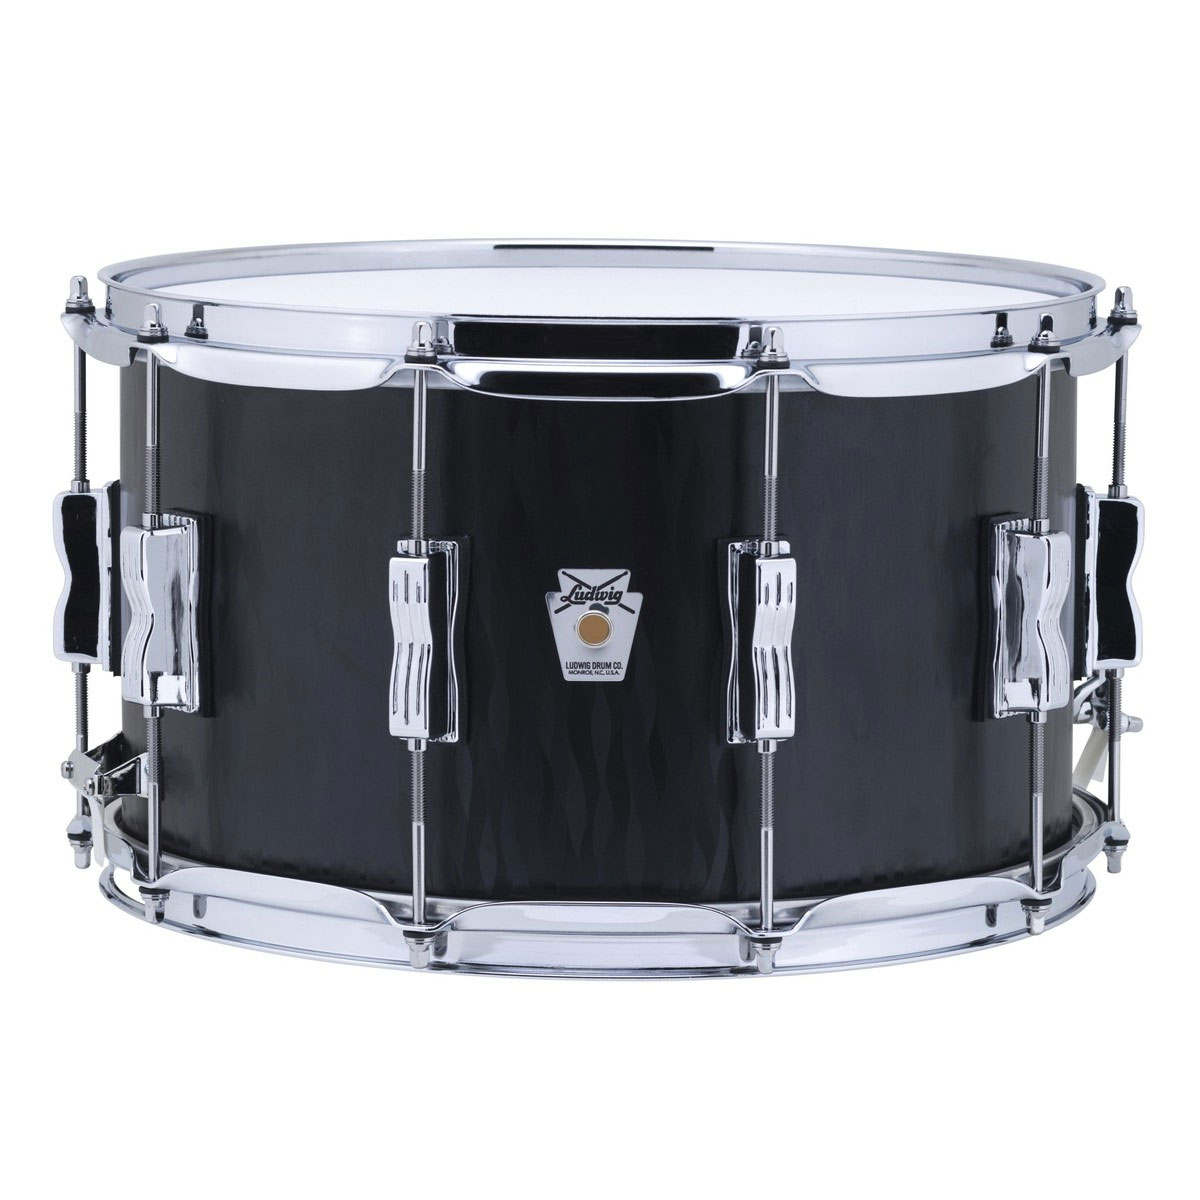 "Ludwig Limited Edition 8"" x 14"" Standard Maple Snare Drum in Black Flame"